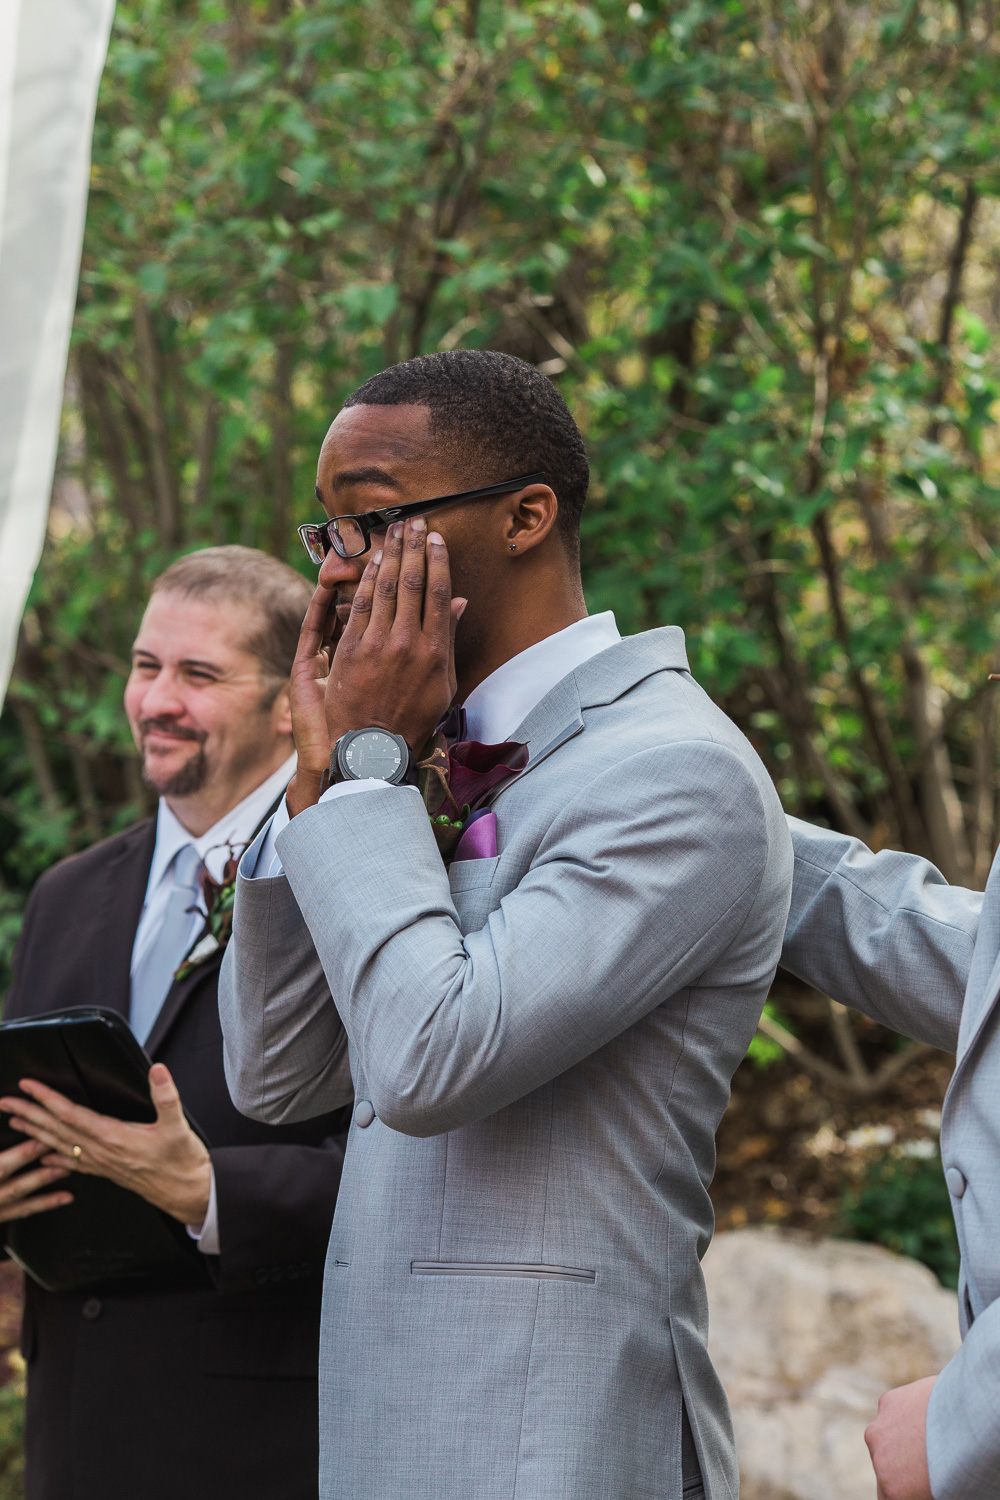 Emotional groom good reaction first look wedding ceremony